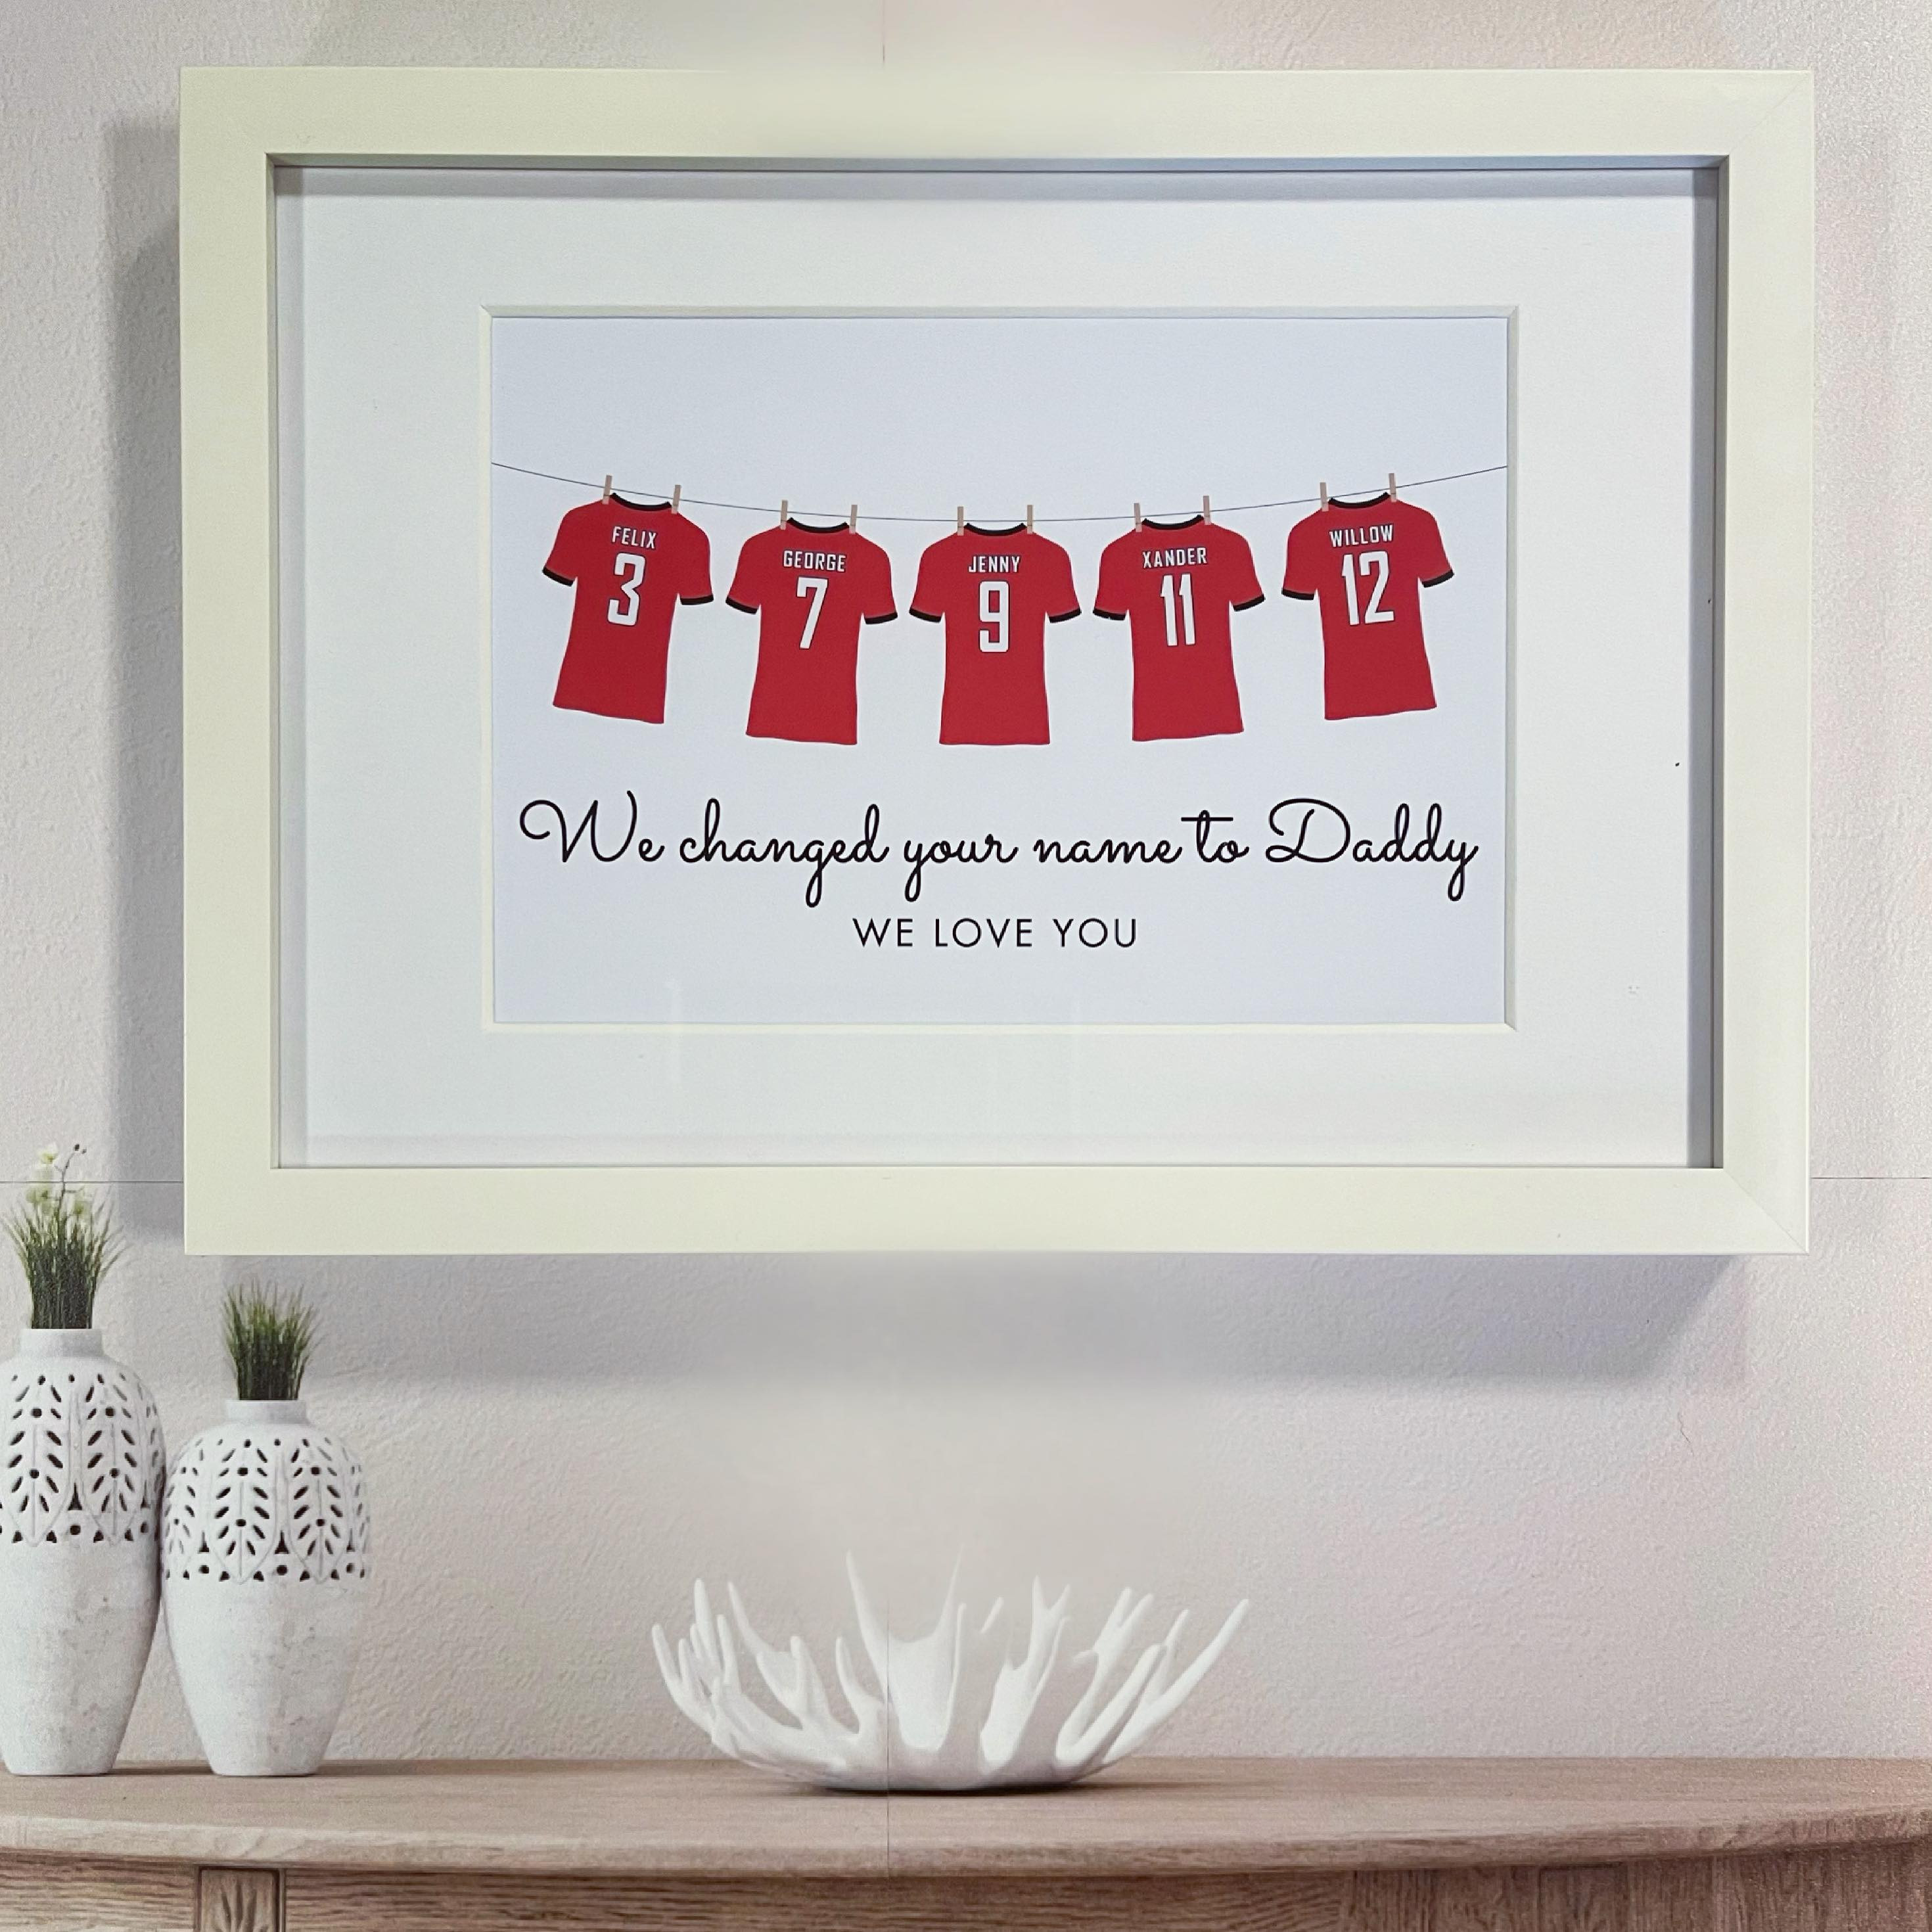 Personalised Football Shirts Print - GUARANTEED FOR FATHER'S DAY DELIVERY